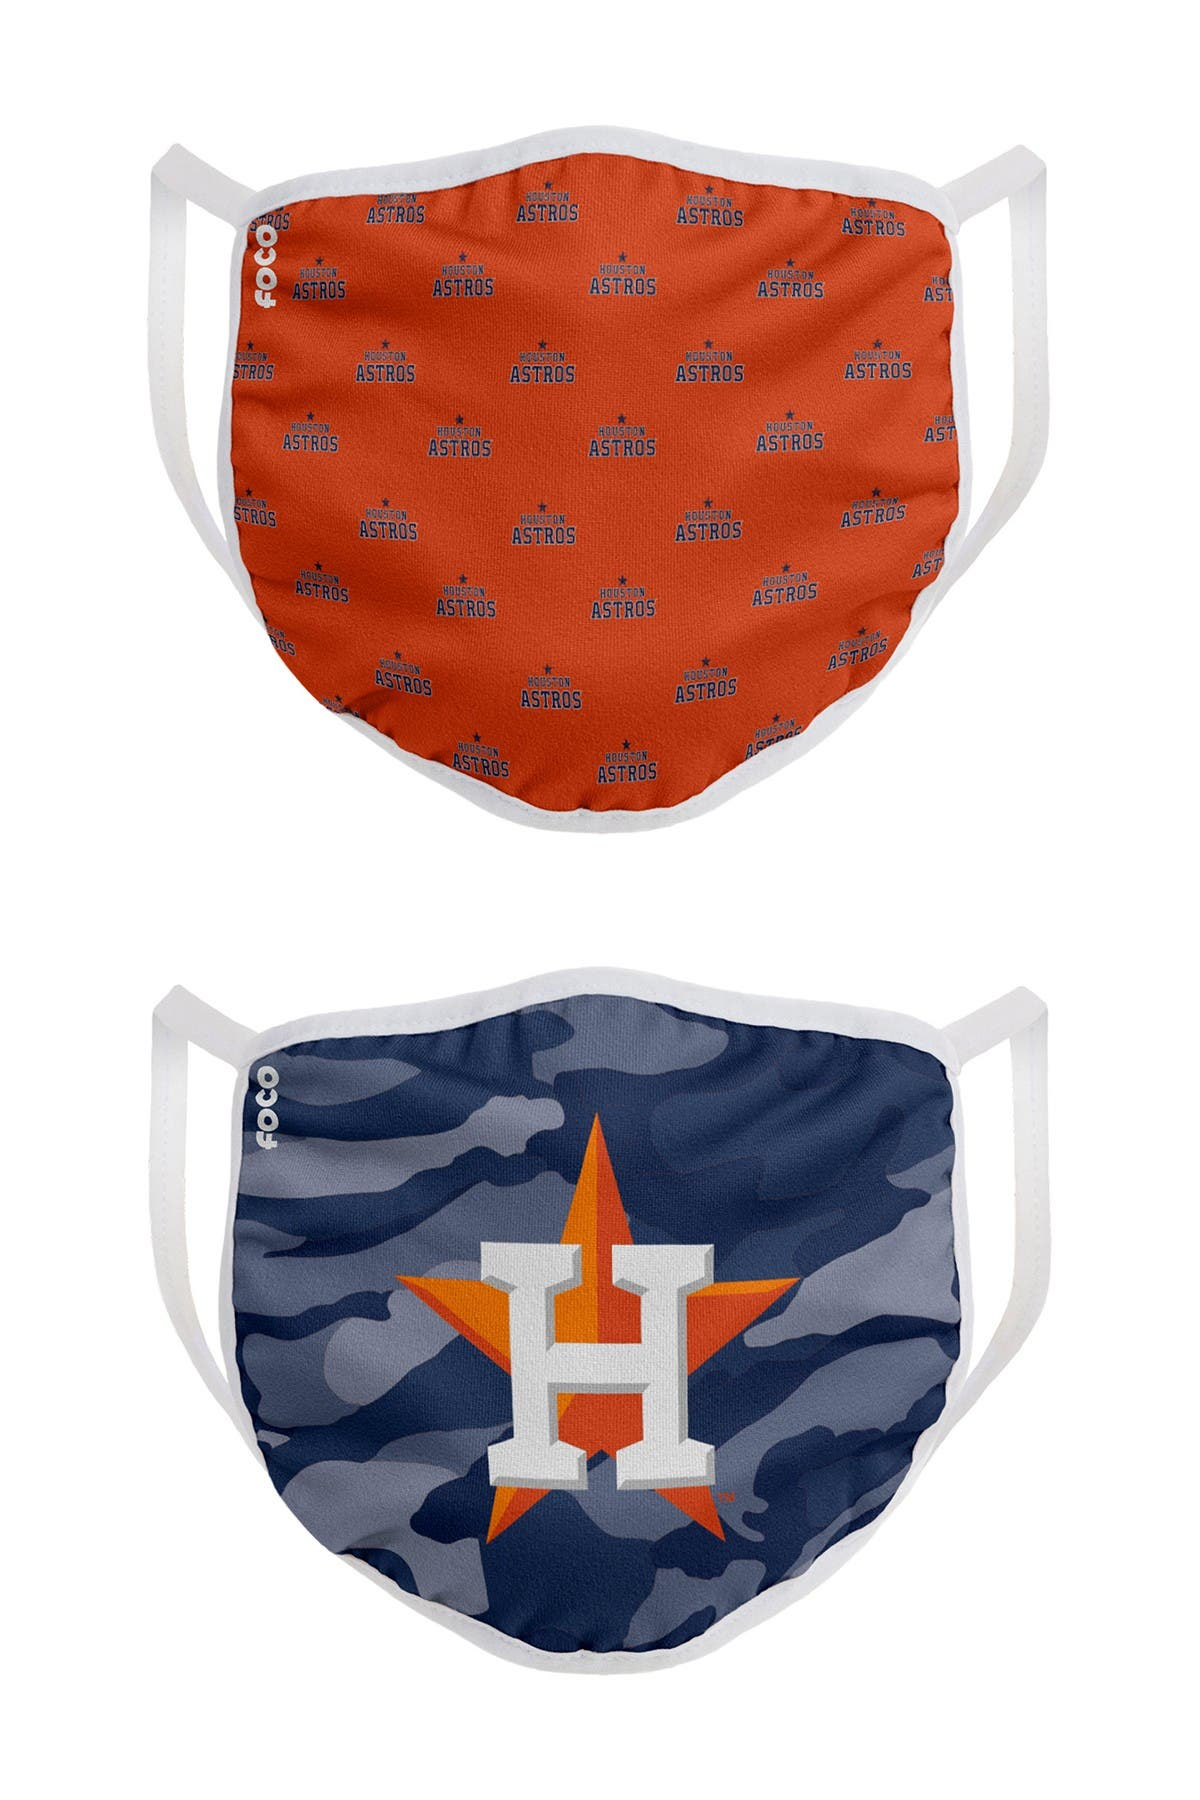 Image of FOCO MLB Houston Astros Clutch Printed Face Cover - Pack of 2